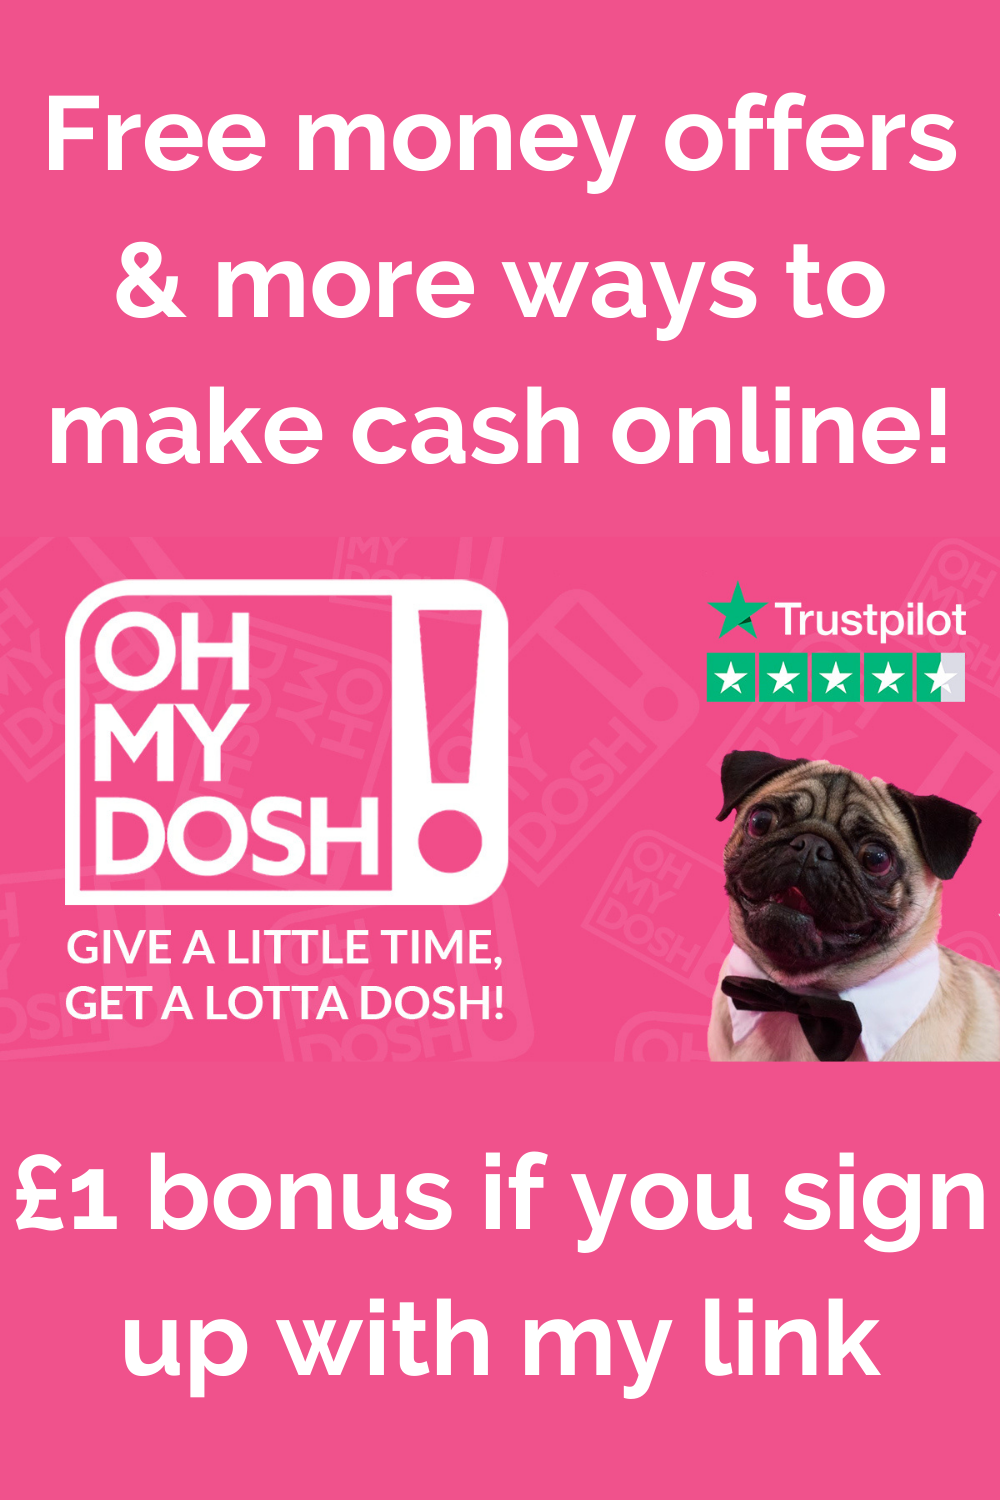 ohmydosh review